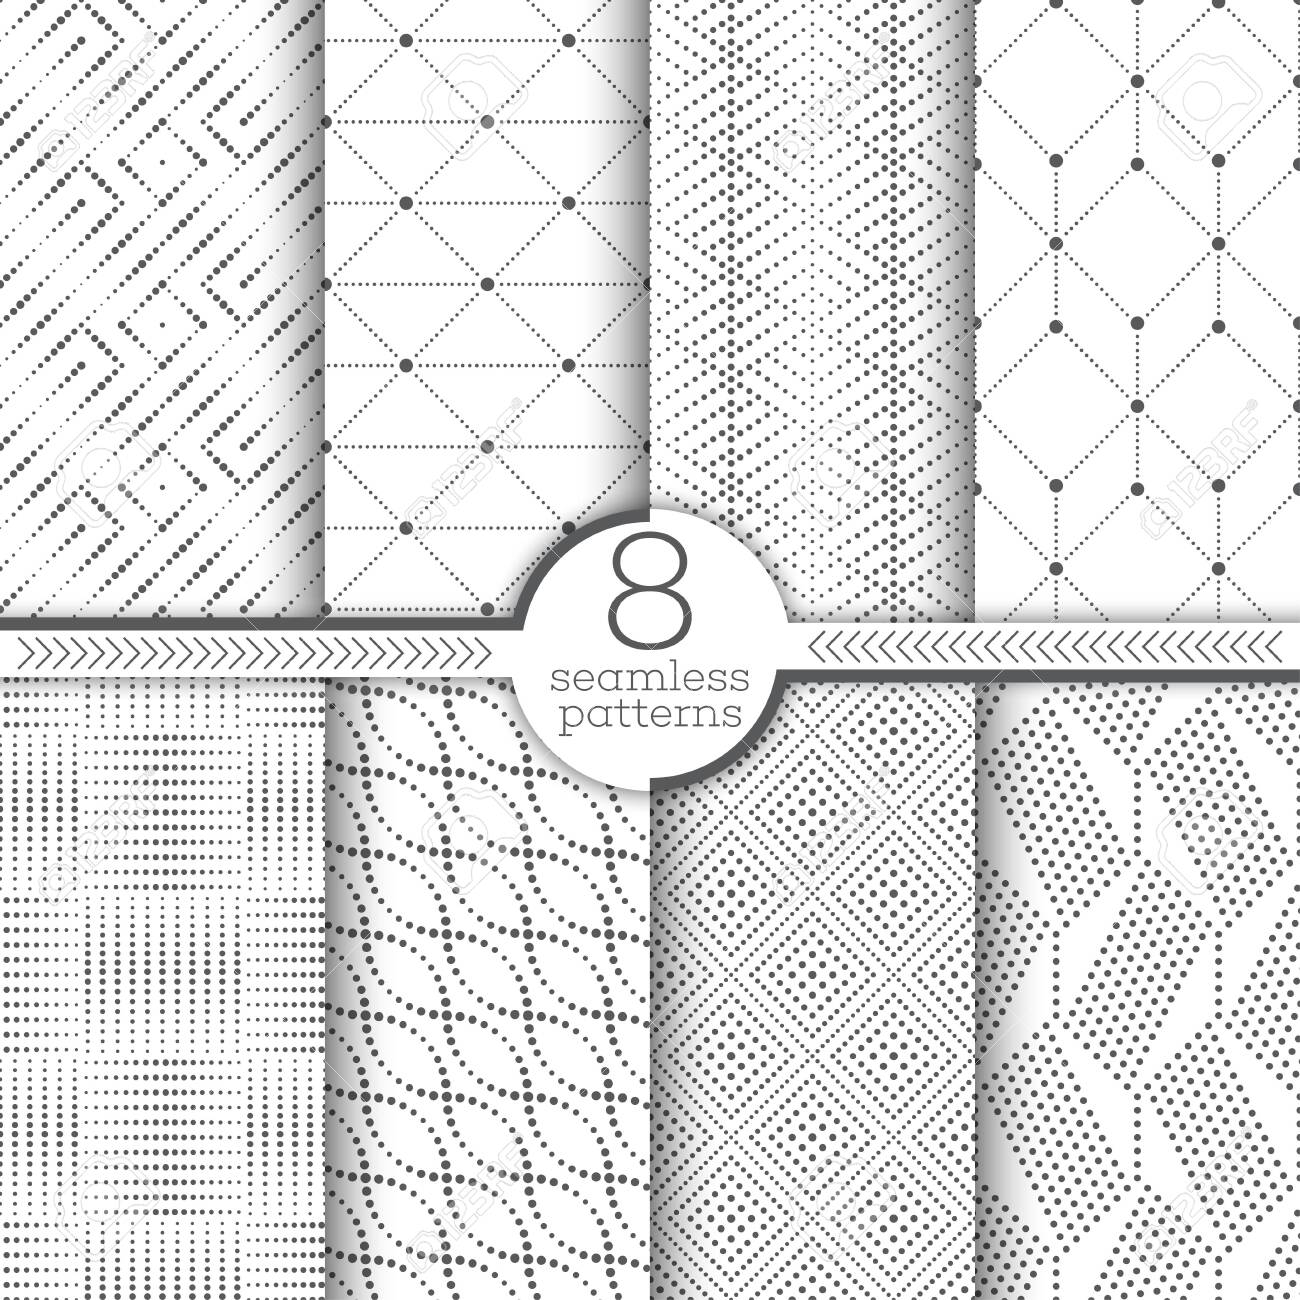 Set of vector seamless patterns. Modern stylish textures with small dots. Infinitely repeating geometrical ornaments with dotted shapes, rhombus, triangle, hexagon, square, diagonal oval - 120262798